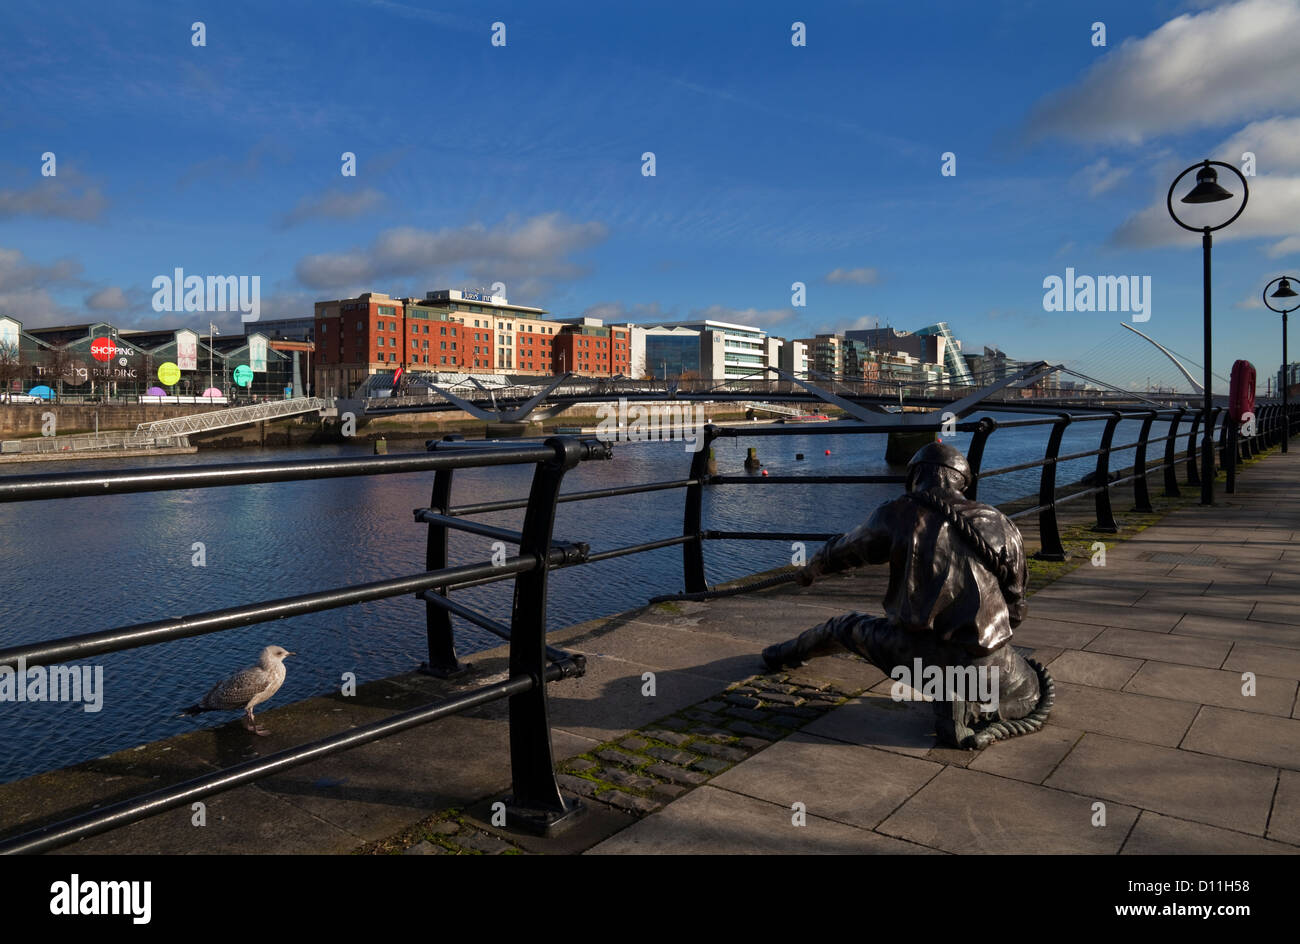 Sculpture of a Docker or Linesman on the regenerated River Liffey Quays, Dublin City, Ireland - Stock Image